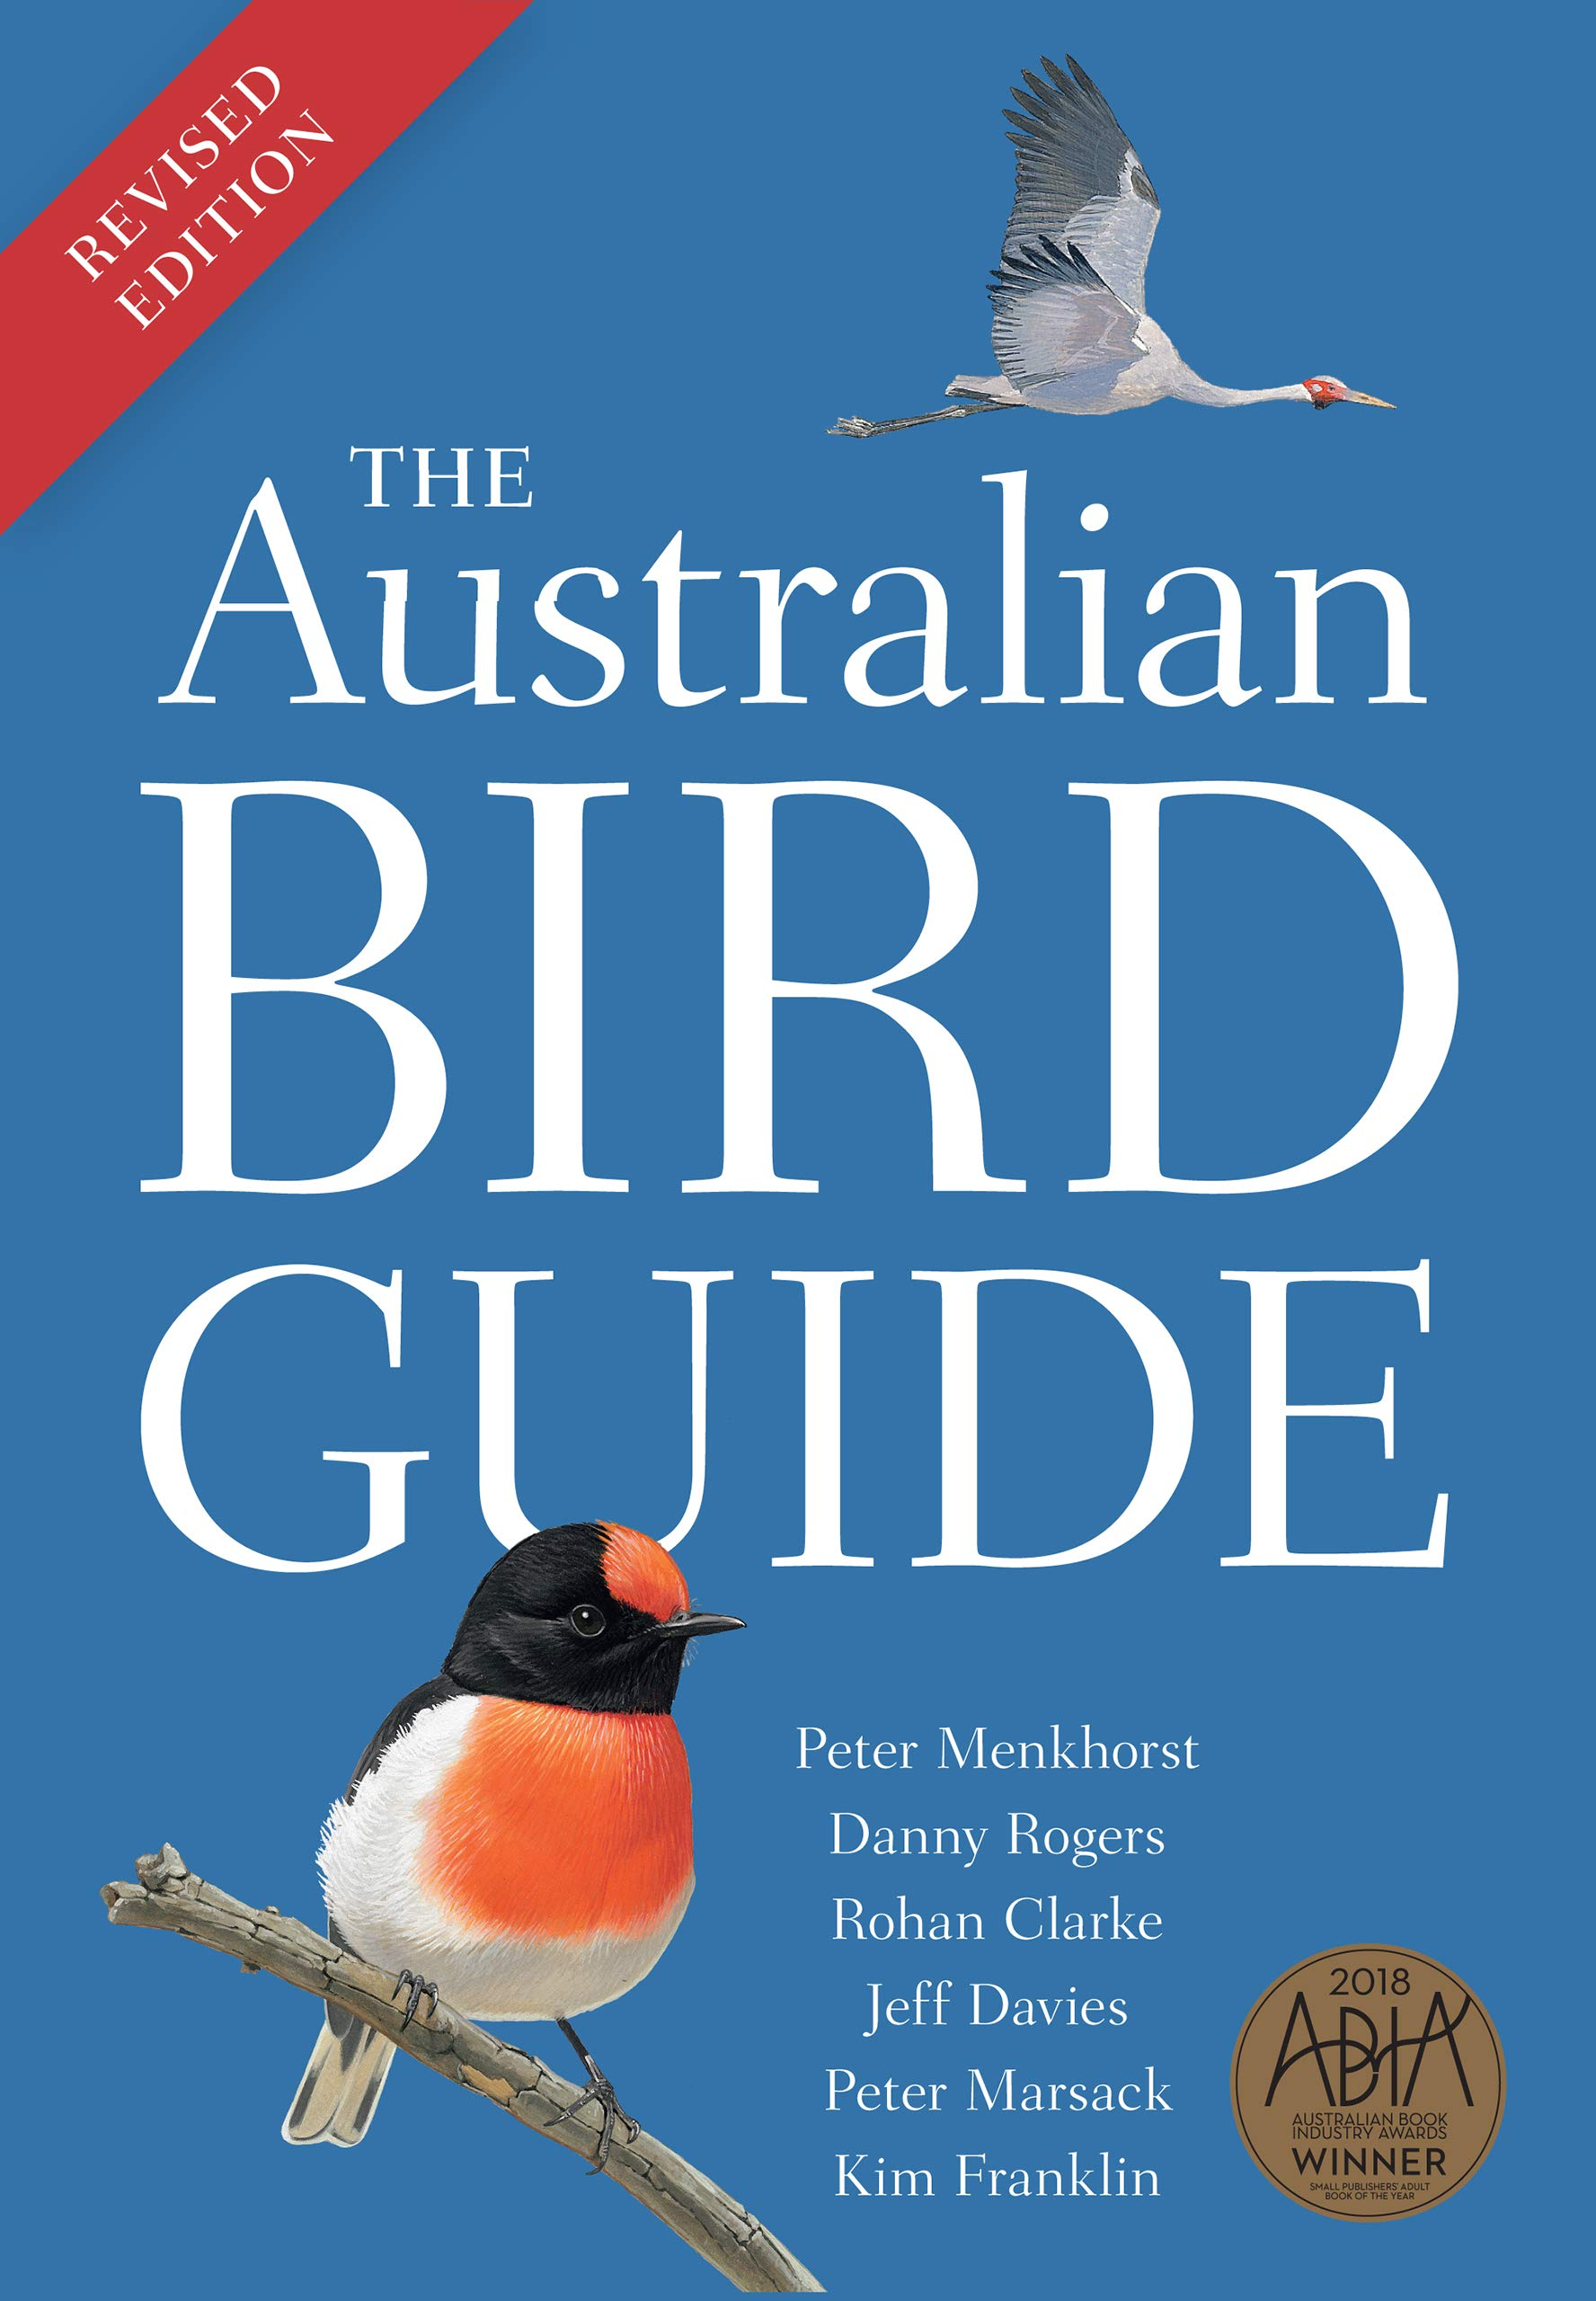 The Australian Bird Guide, by Peter Menkhorst (Author), Danny Rogers (Author), Rohan Clarke (Author), Jeff Davies (Illustrator), Peter Marsack (Illustrator), Kim Franklin (Illustrator) - Sulphur-crested Cockatoo - Cacatua galerita